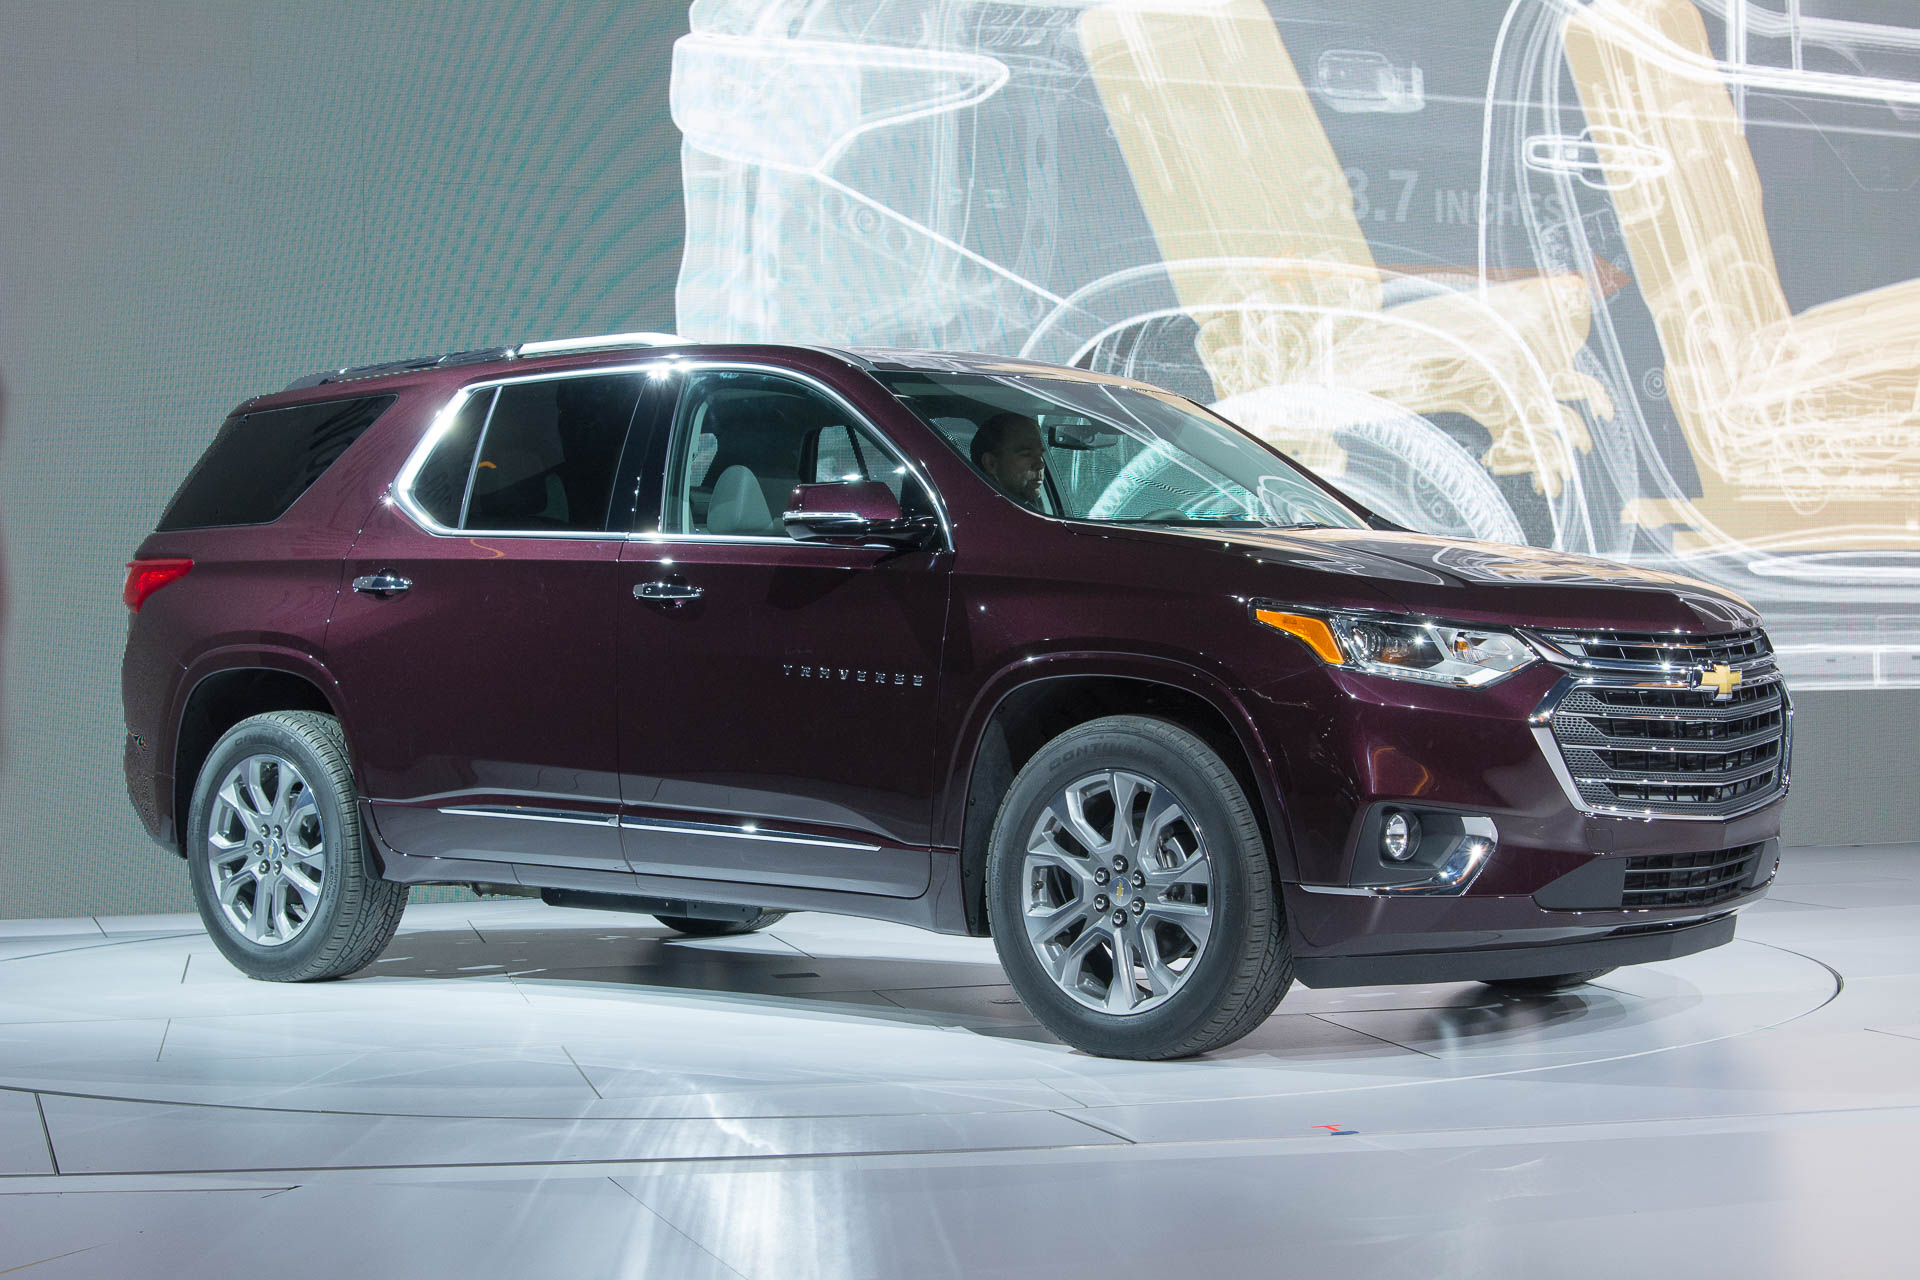 GM's future SUVs and crossovers: Light-truck based, heavy ...